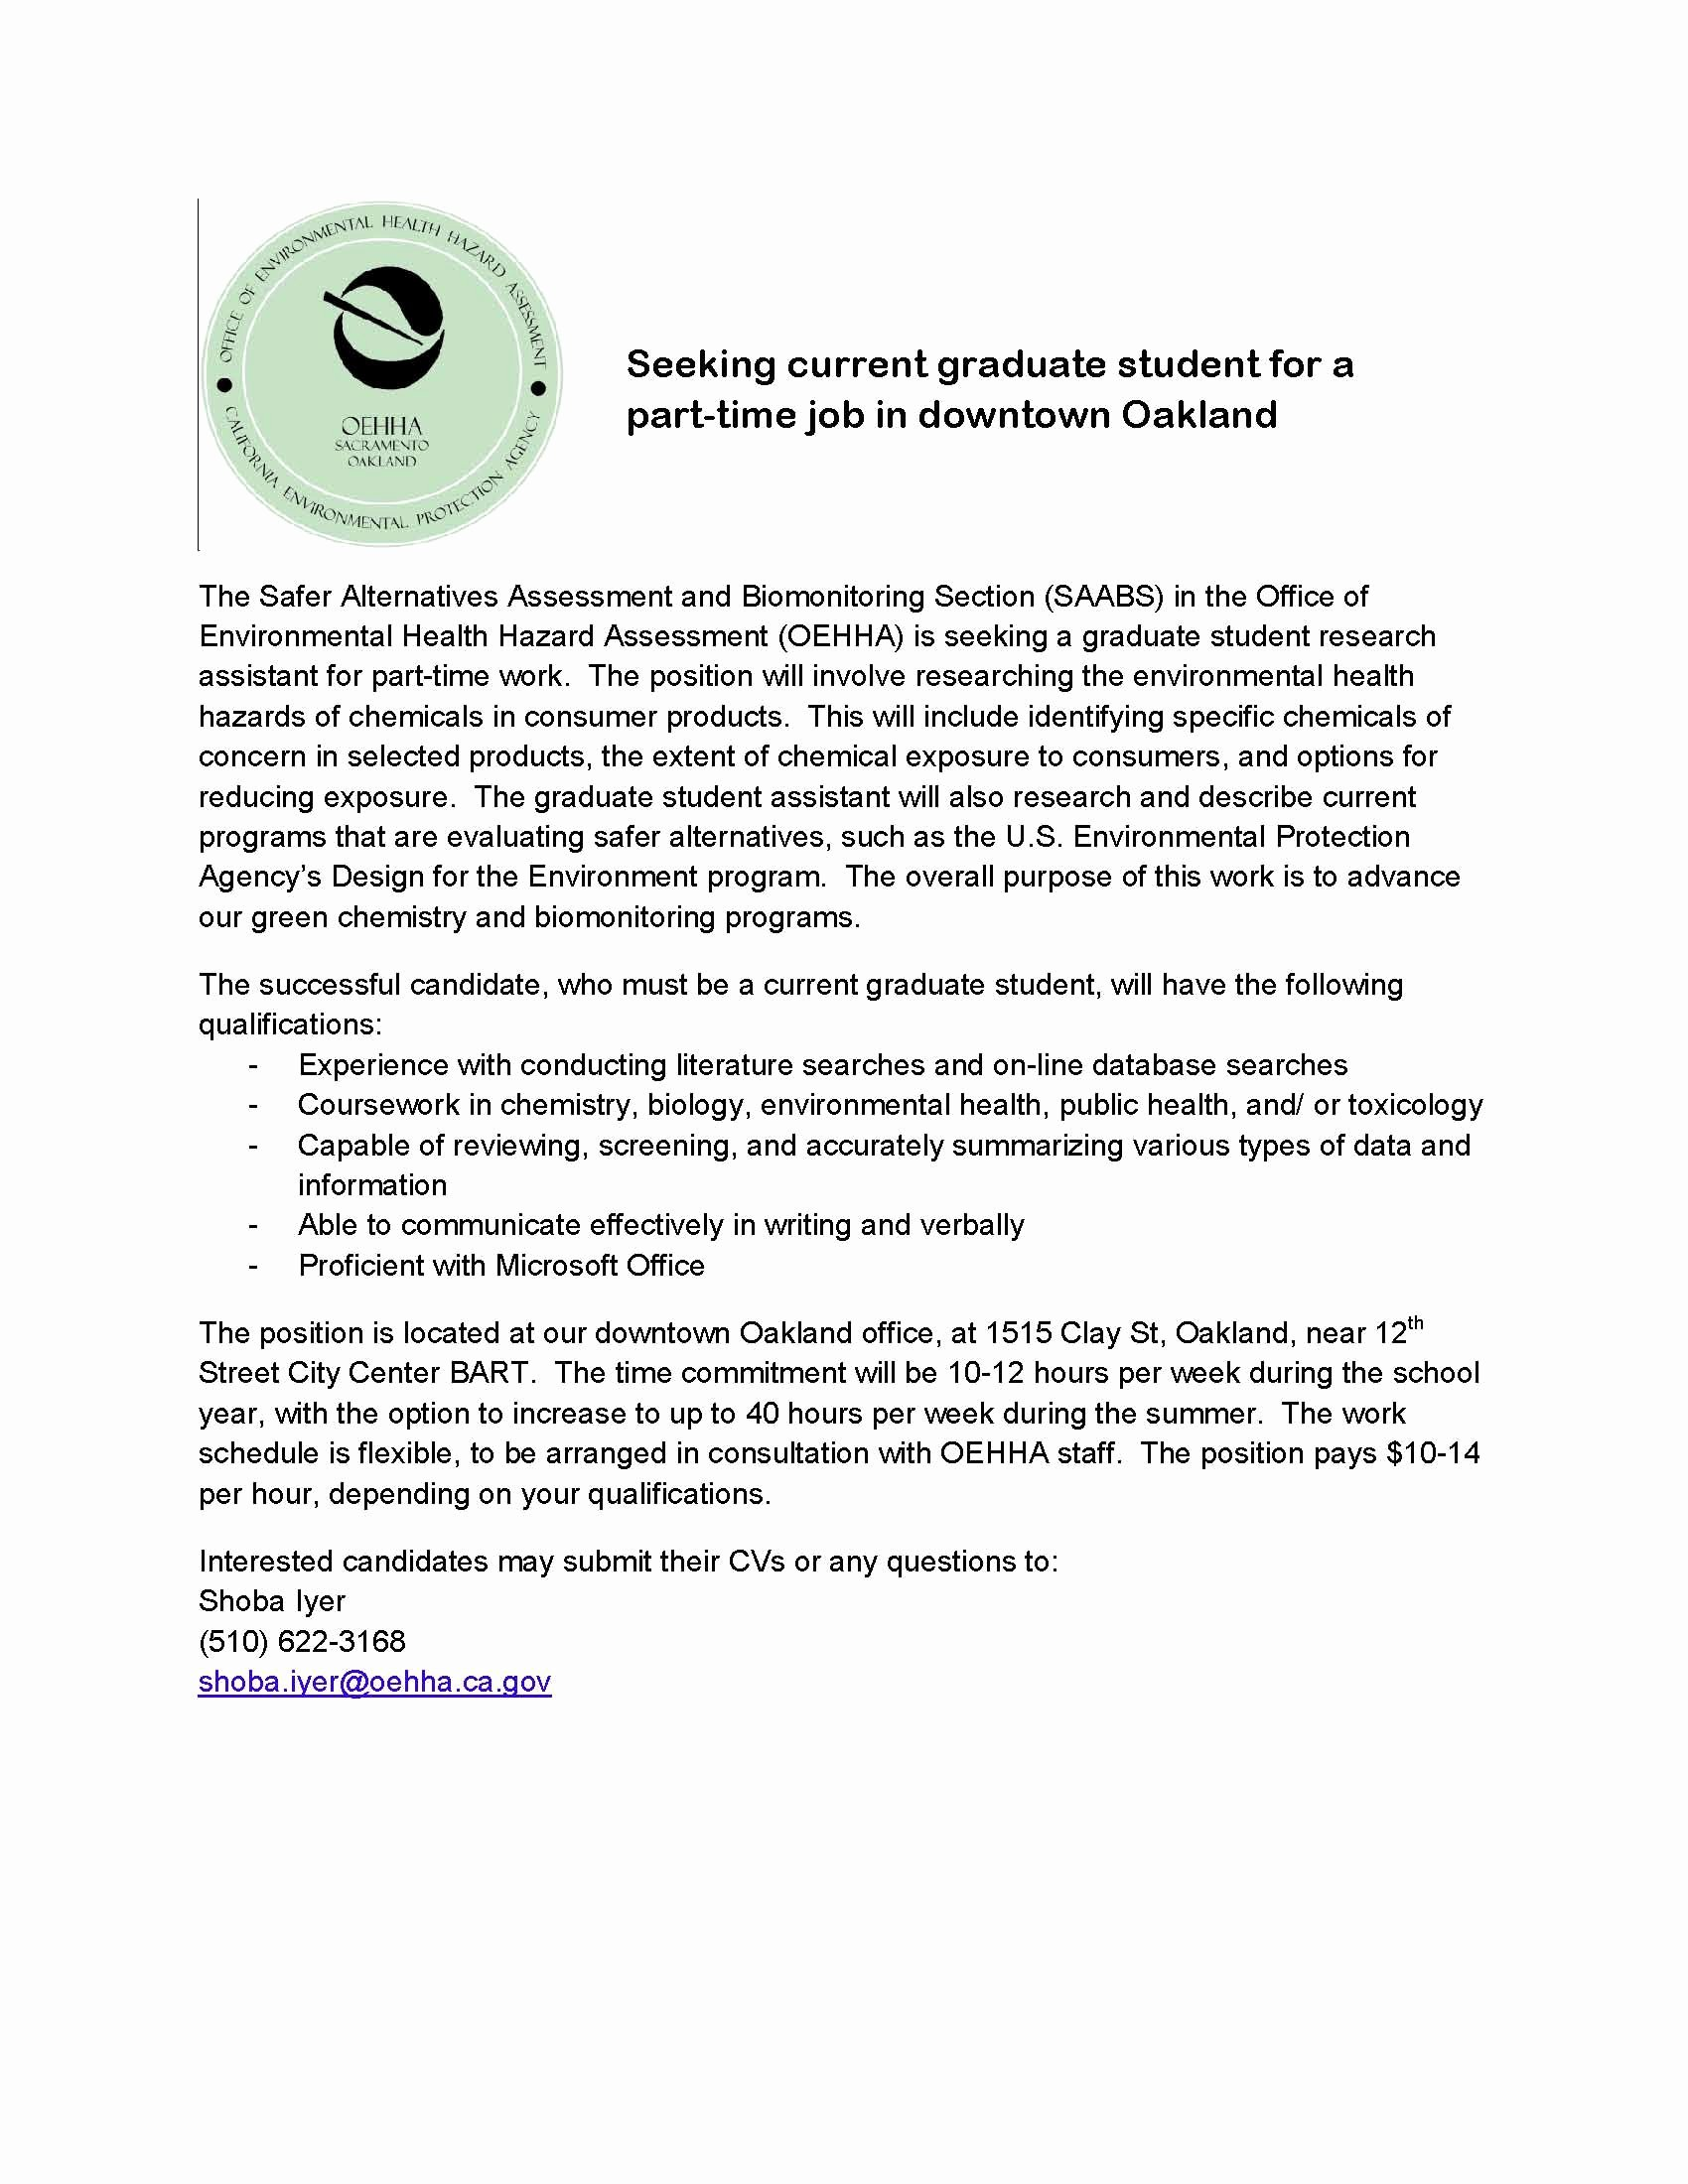 Recommendation Letter for Postdoc Beautiful Cover Letter Postdoc